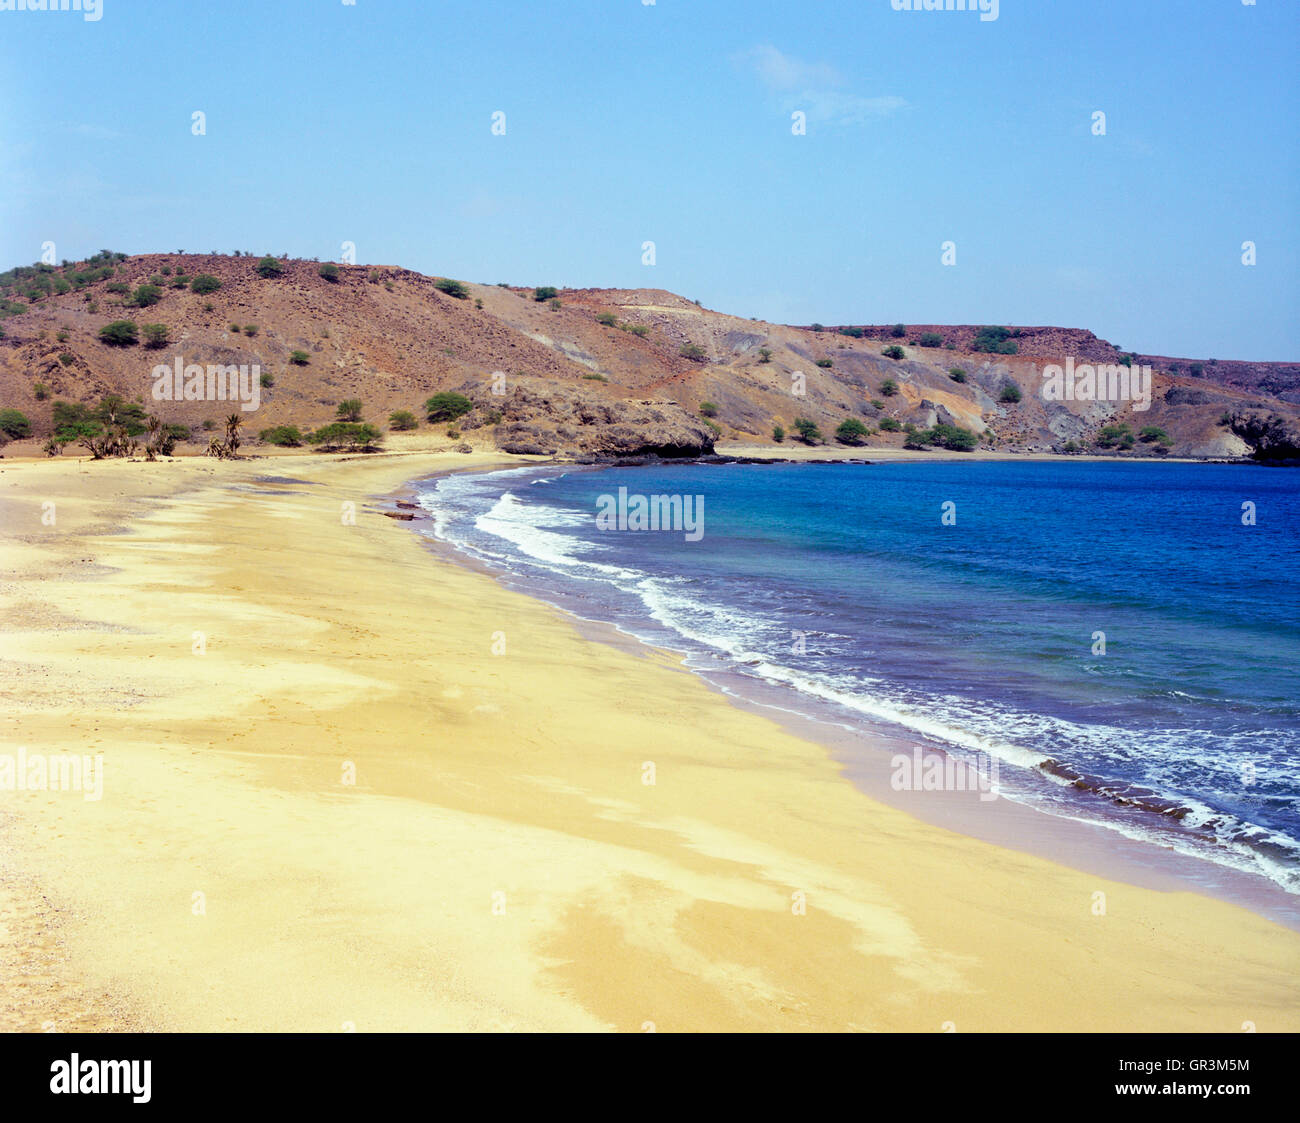 The main beach and bay at Sao Francisco, Santiago, Cape Verde Islands, Africa. - Stock Image